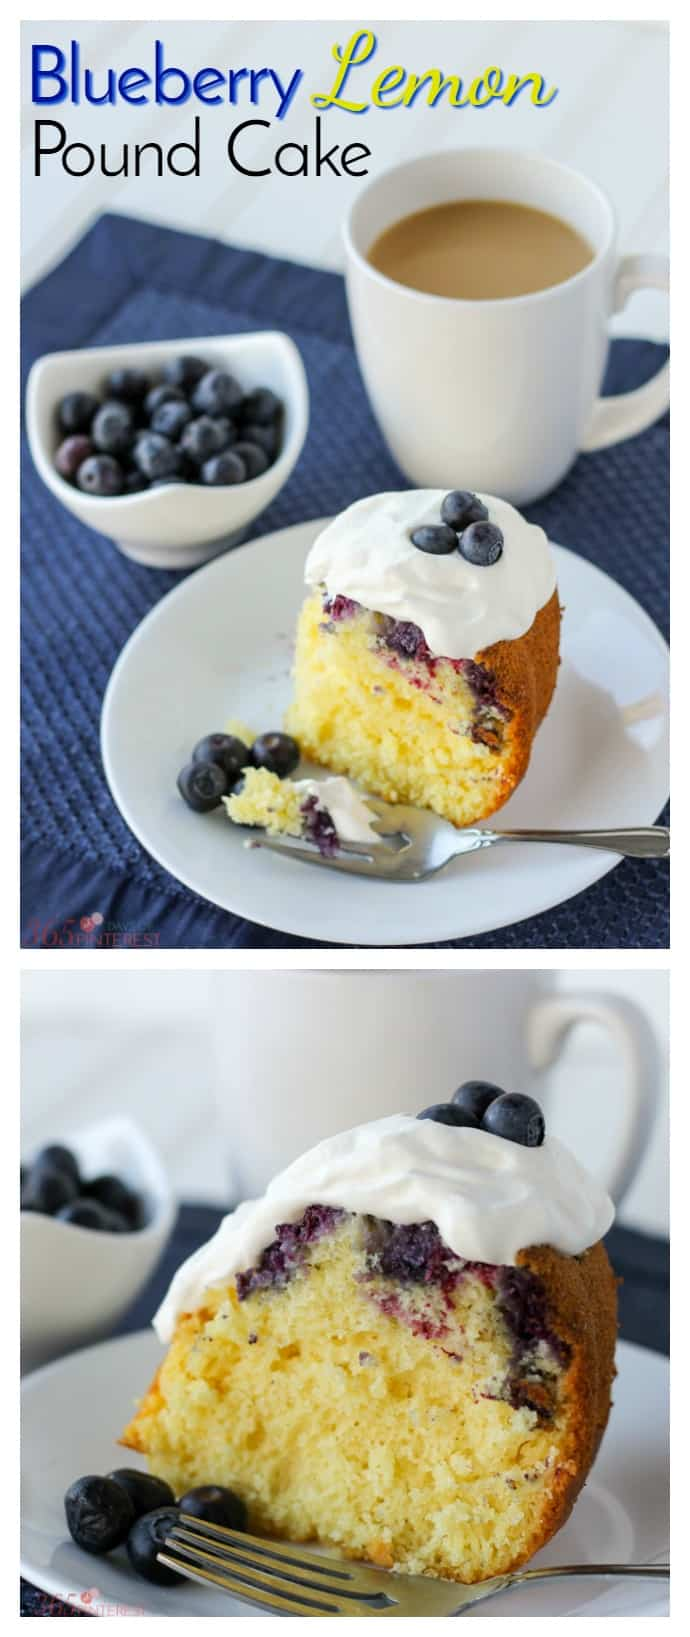 This Blueberry Lemon Pound Cake is quick and easy because it starts with a cake mix. But don't worry, no one will know! via @nmburk